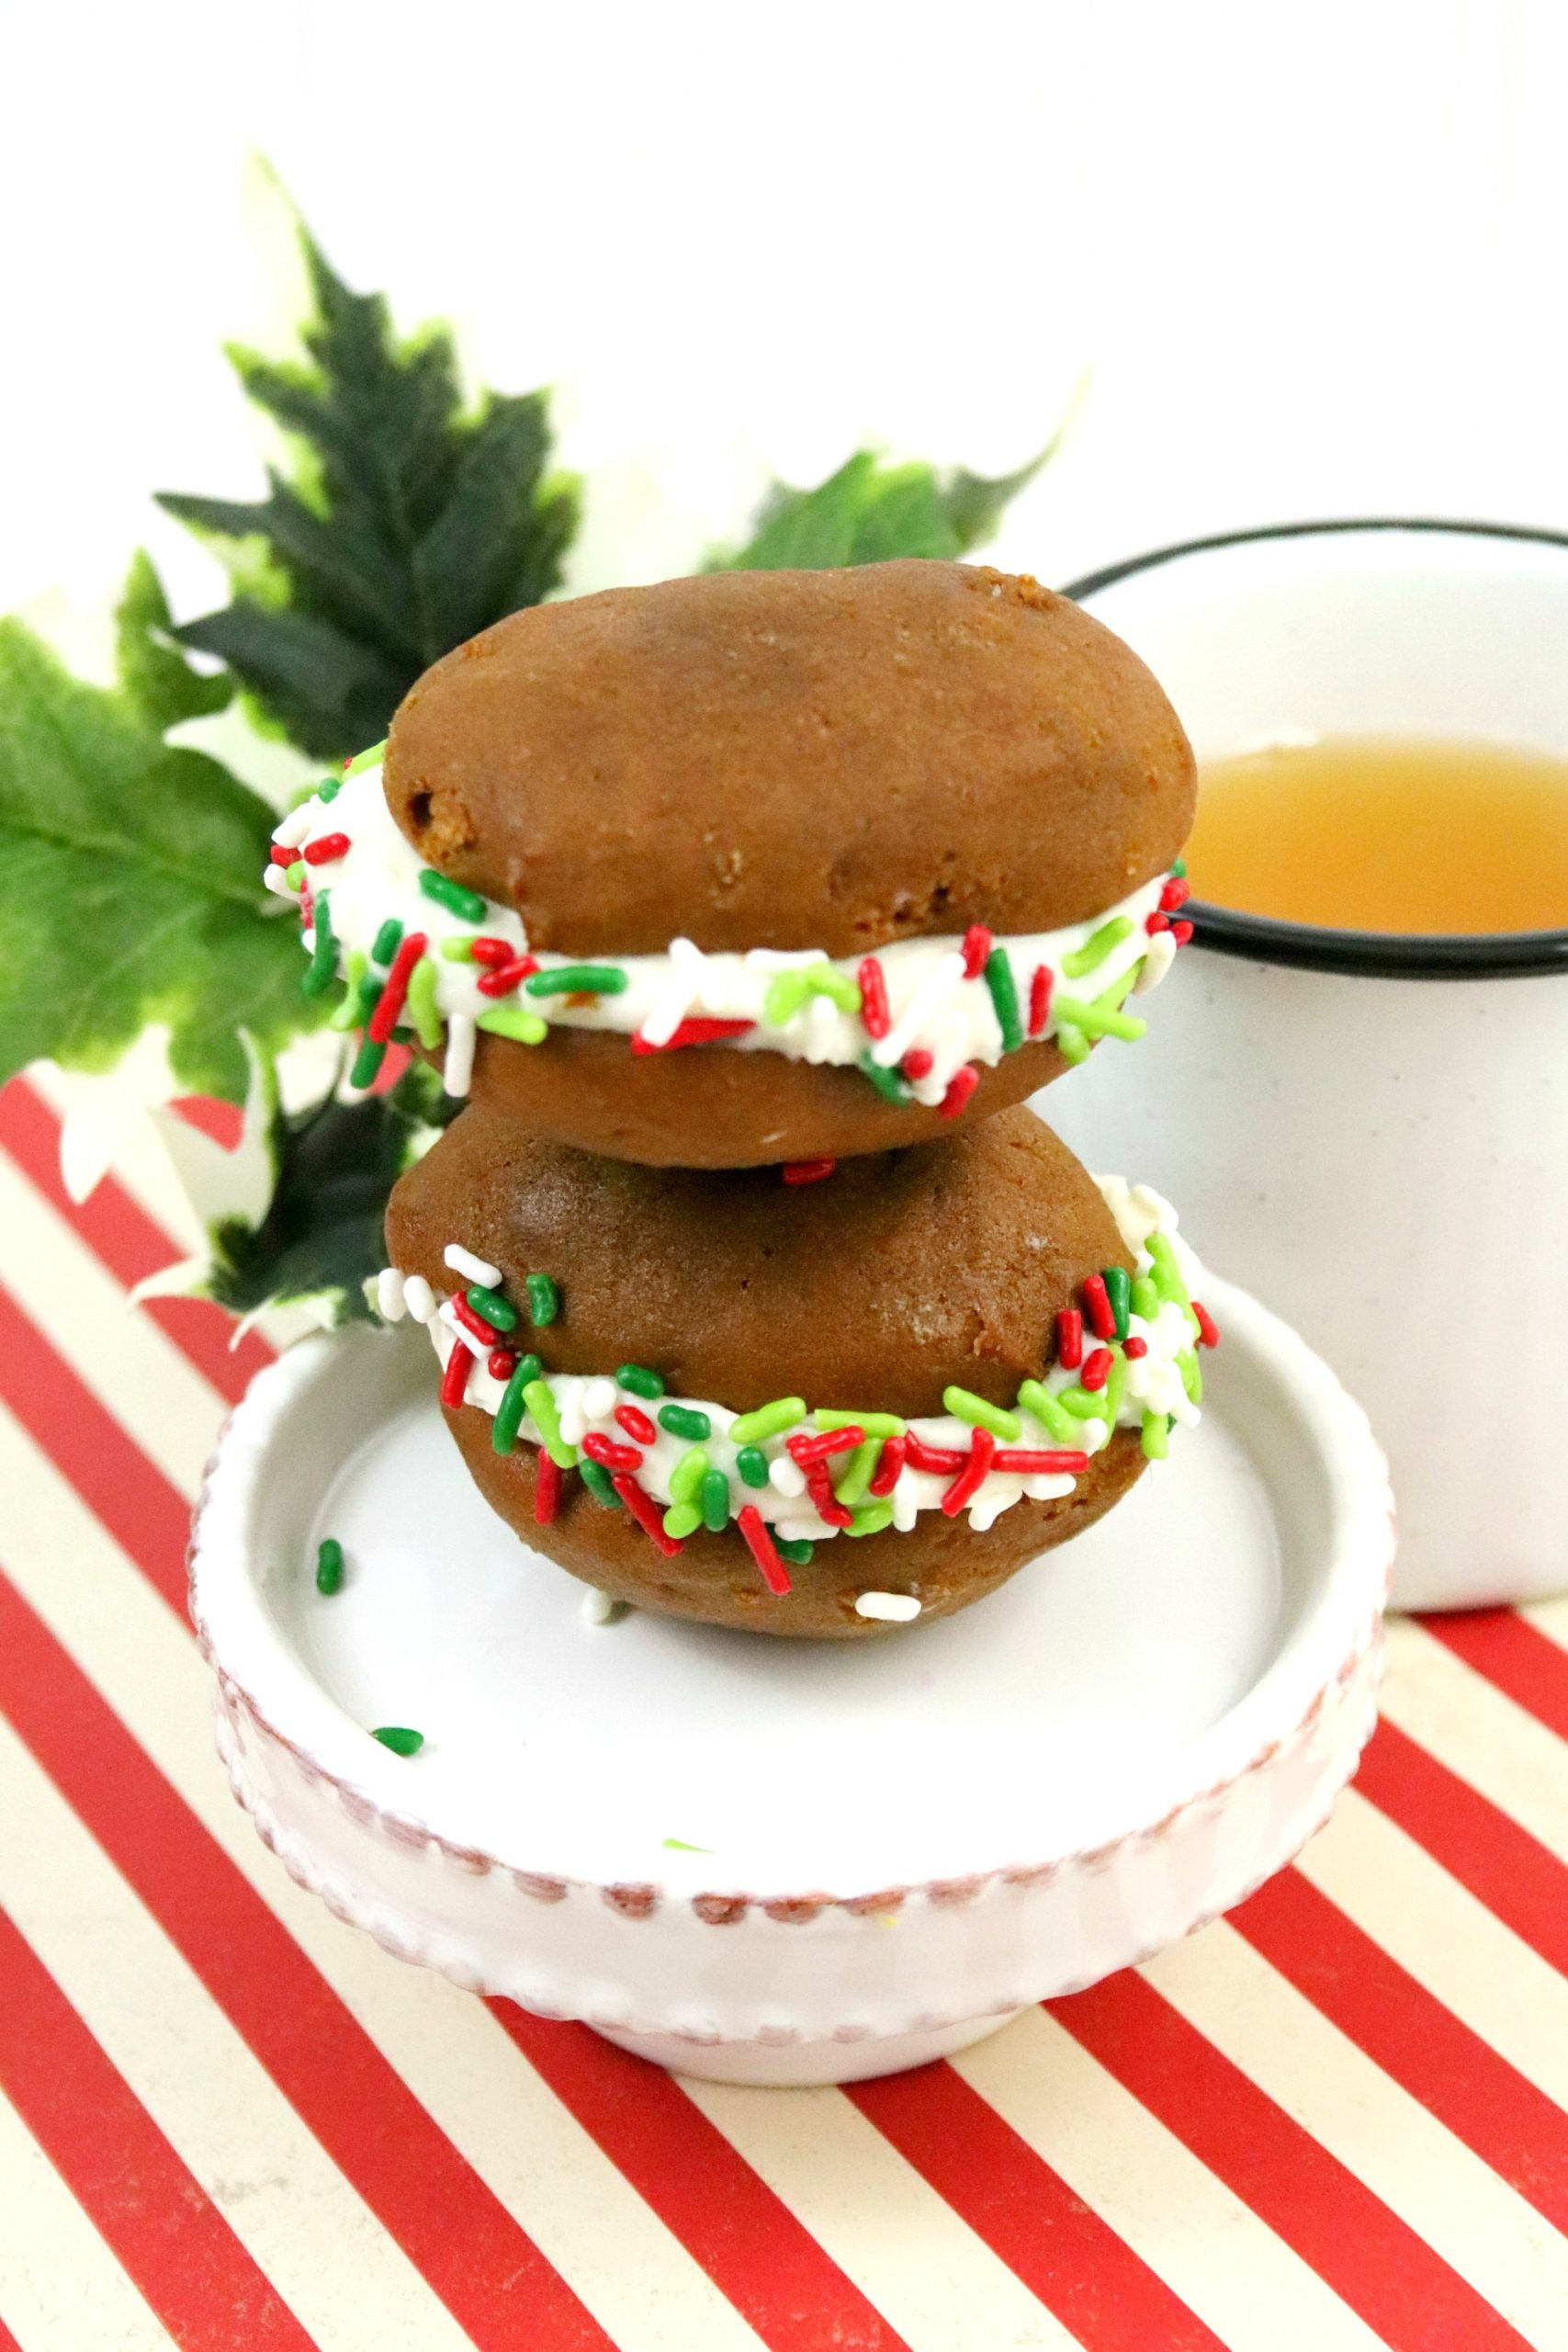 two gingerbread Whoopie Pies stacked on top of each other on a white plate sitting on a red striped table cloth. Mug of tea and greenery in the background